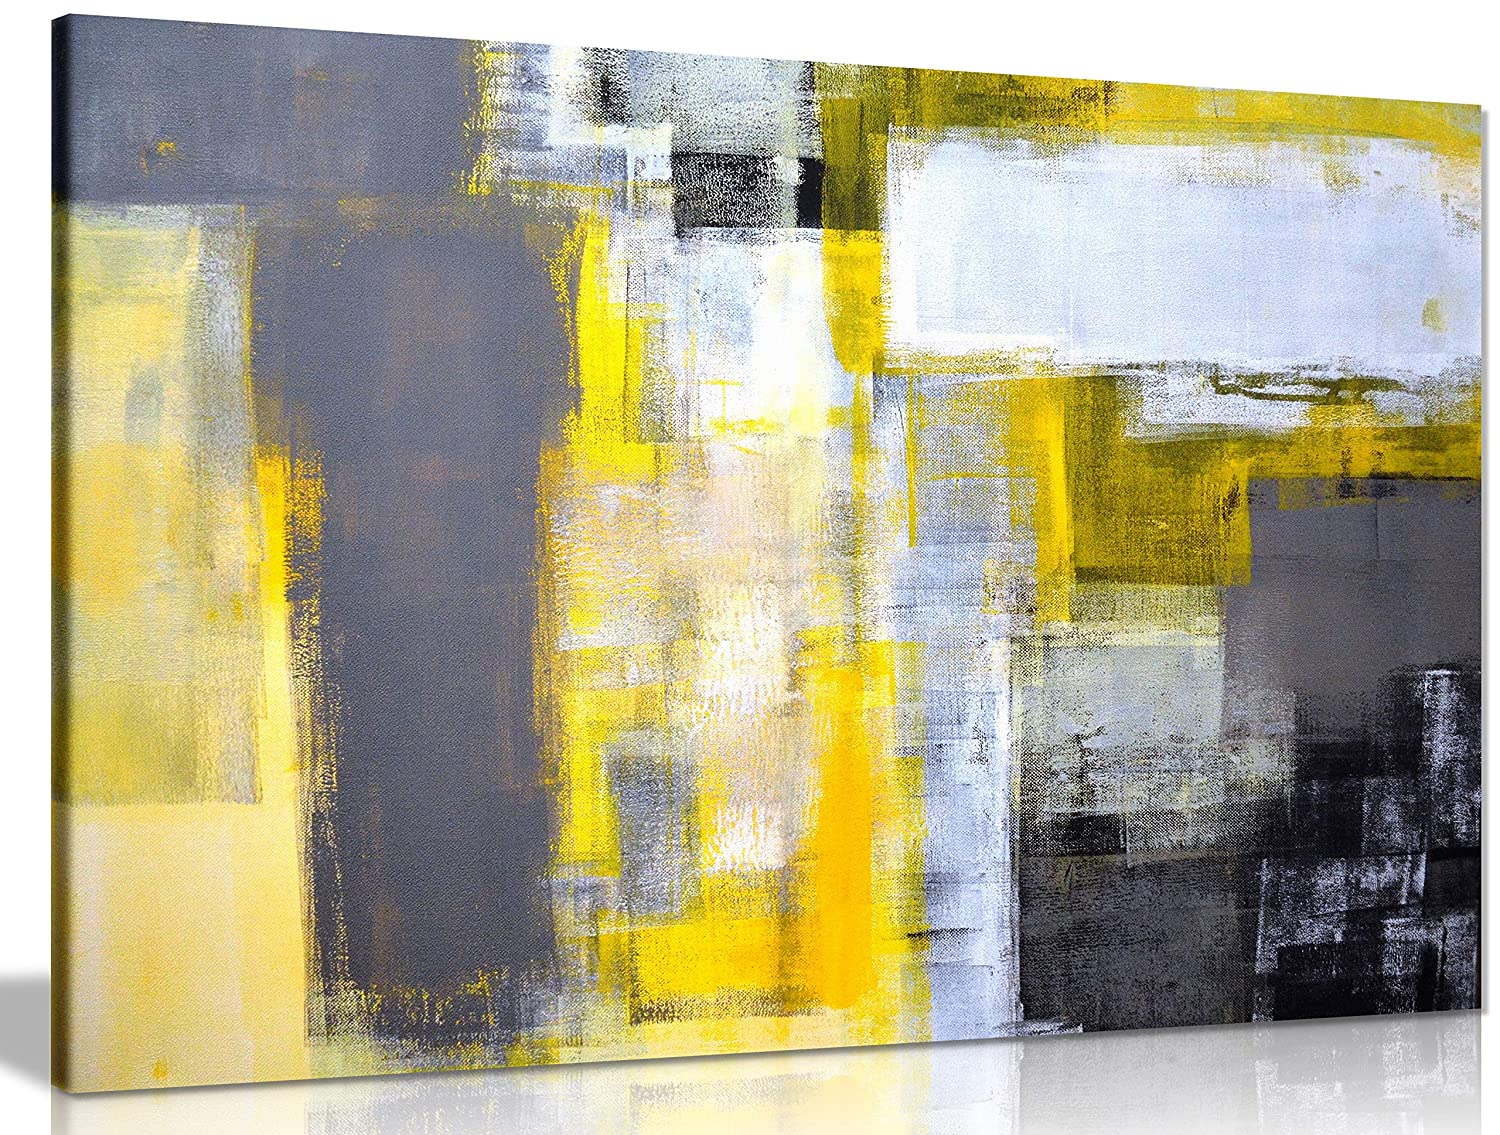 bcf730b51 Office Art Grey And Yellow Abstract Art Painting Canvas Wall Art Picture  Print (24X16): Amazon.co.uk: Kitchen & Home